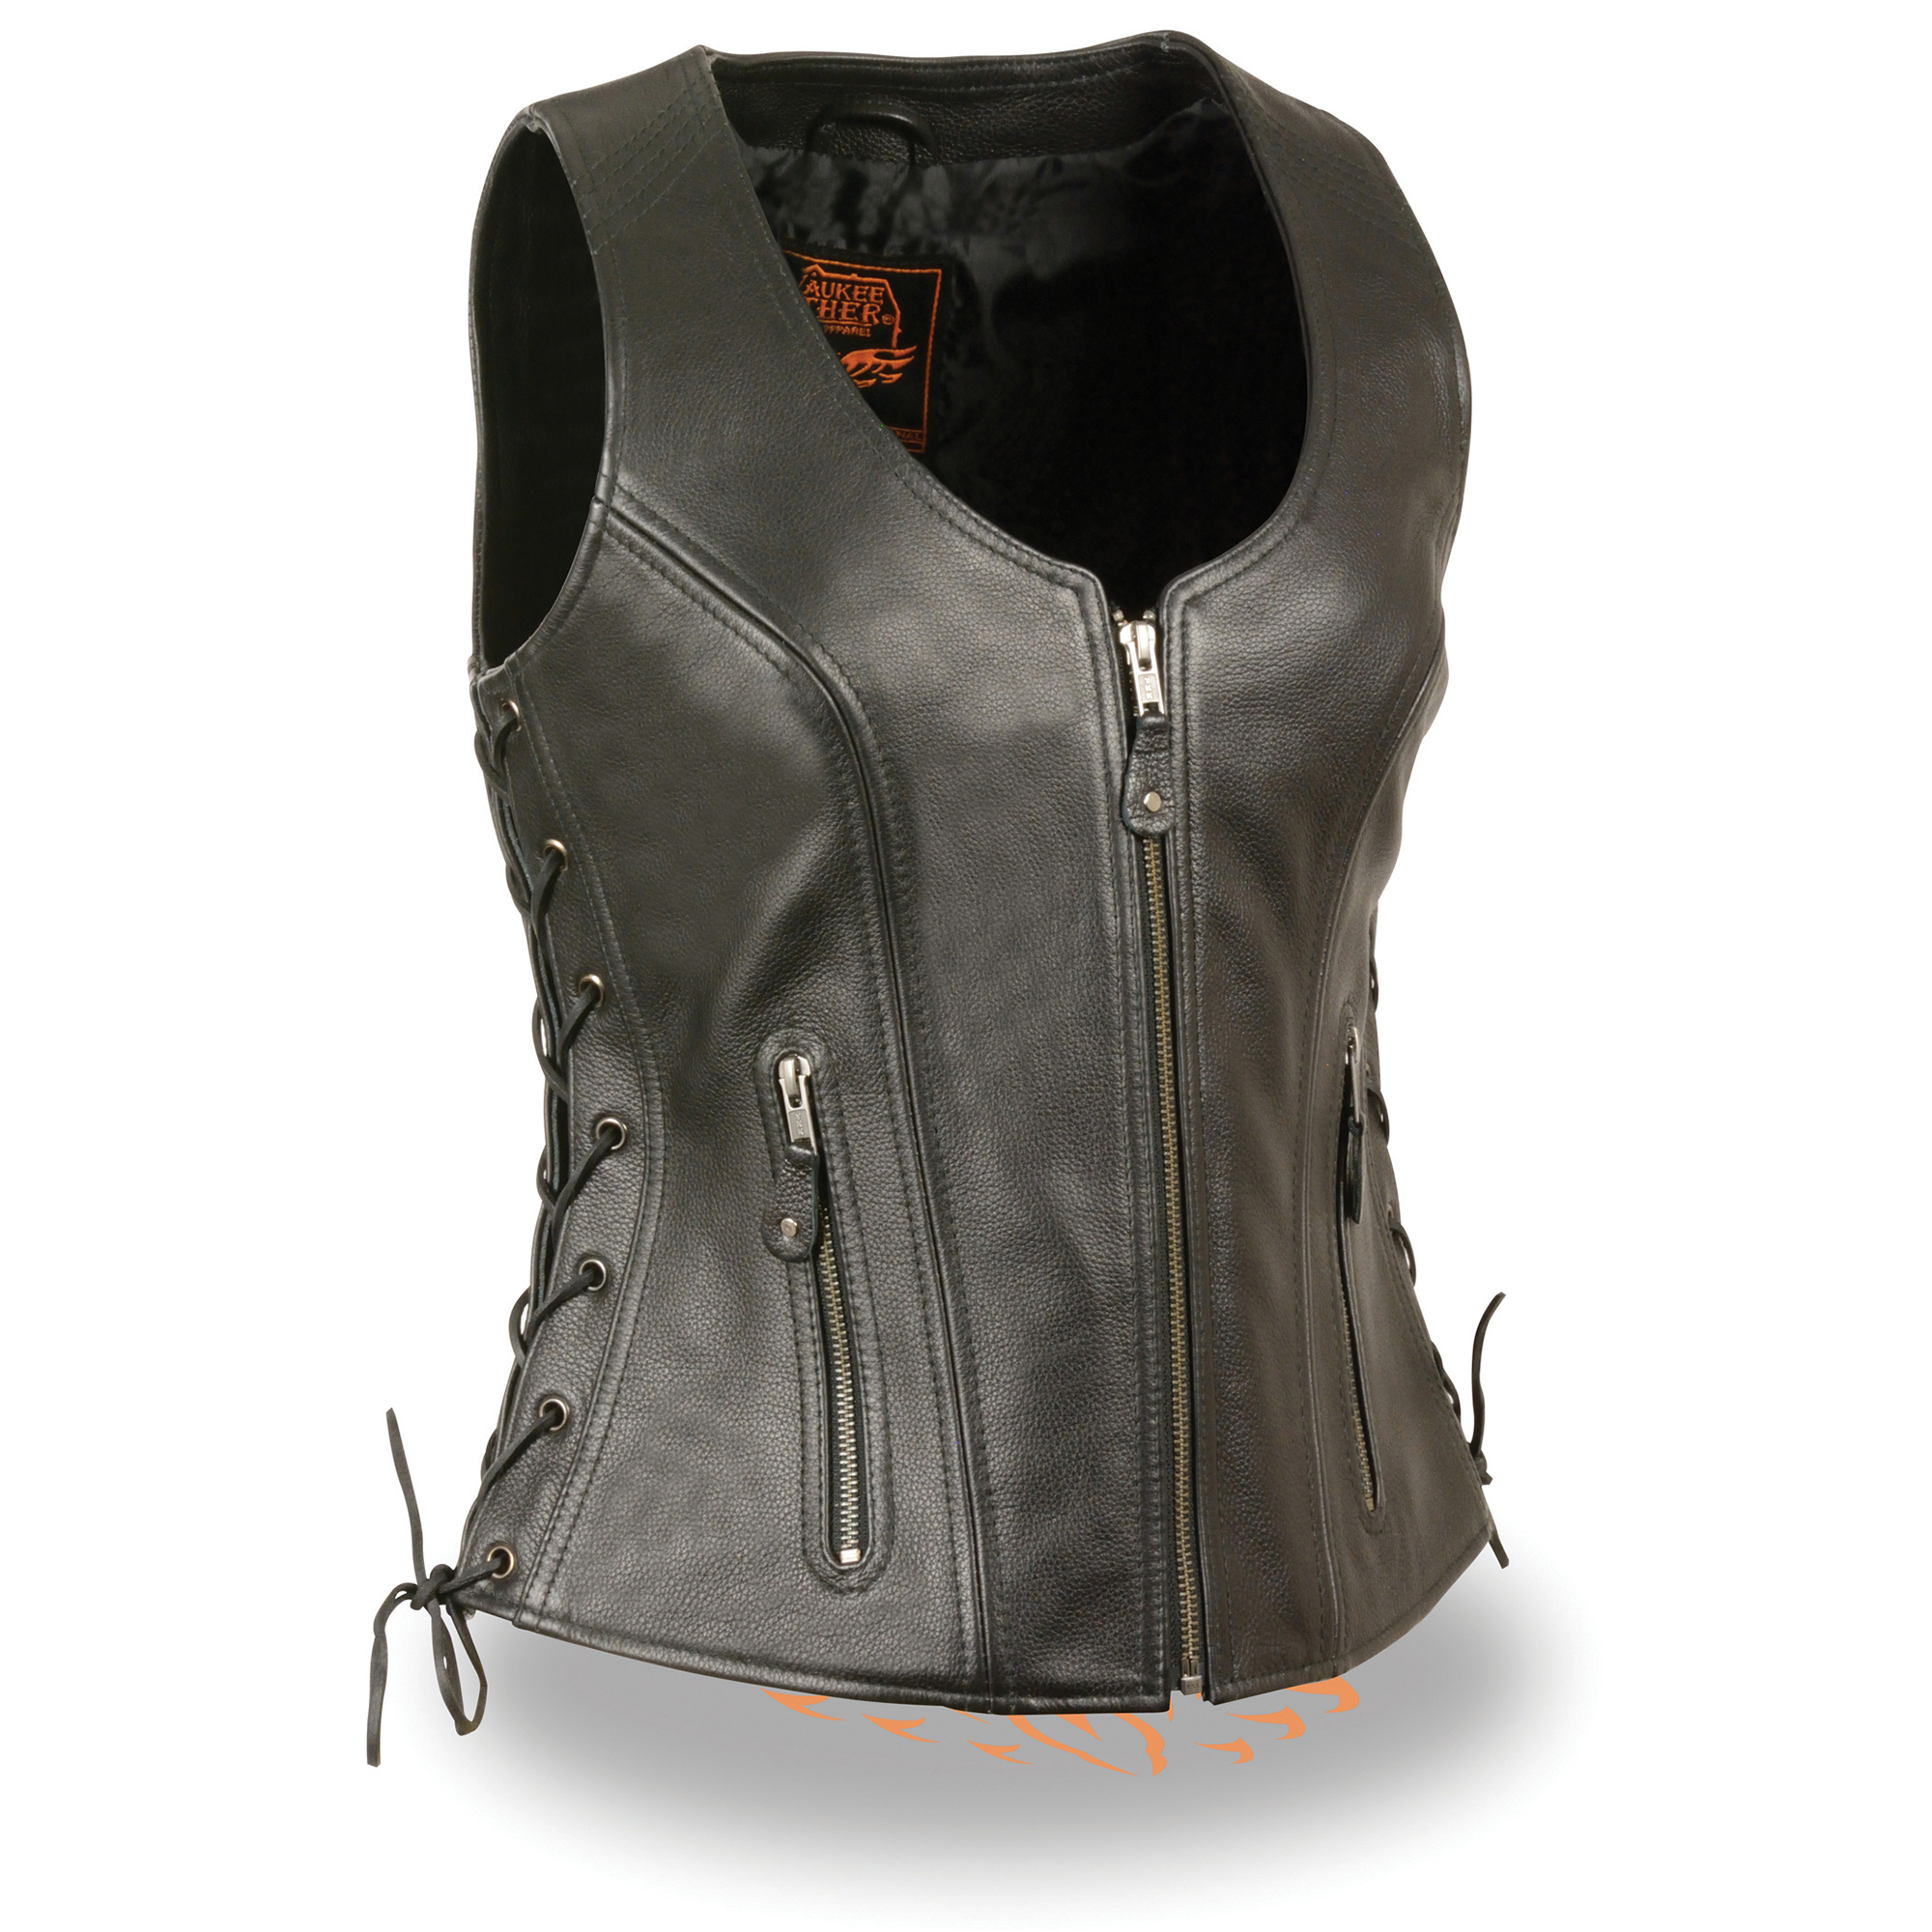 Dynamic Leather - Site - photo #15